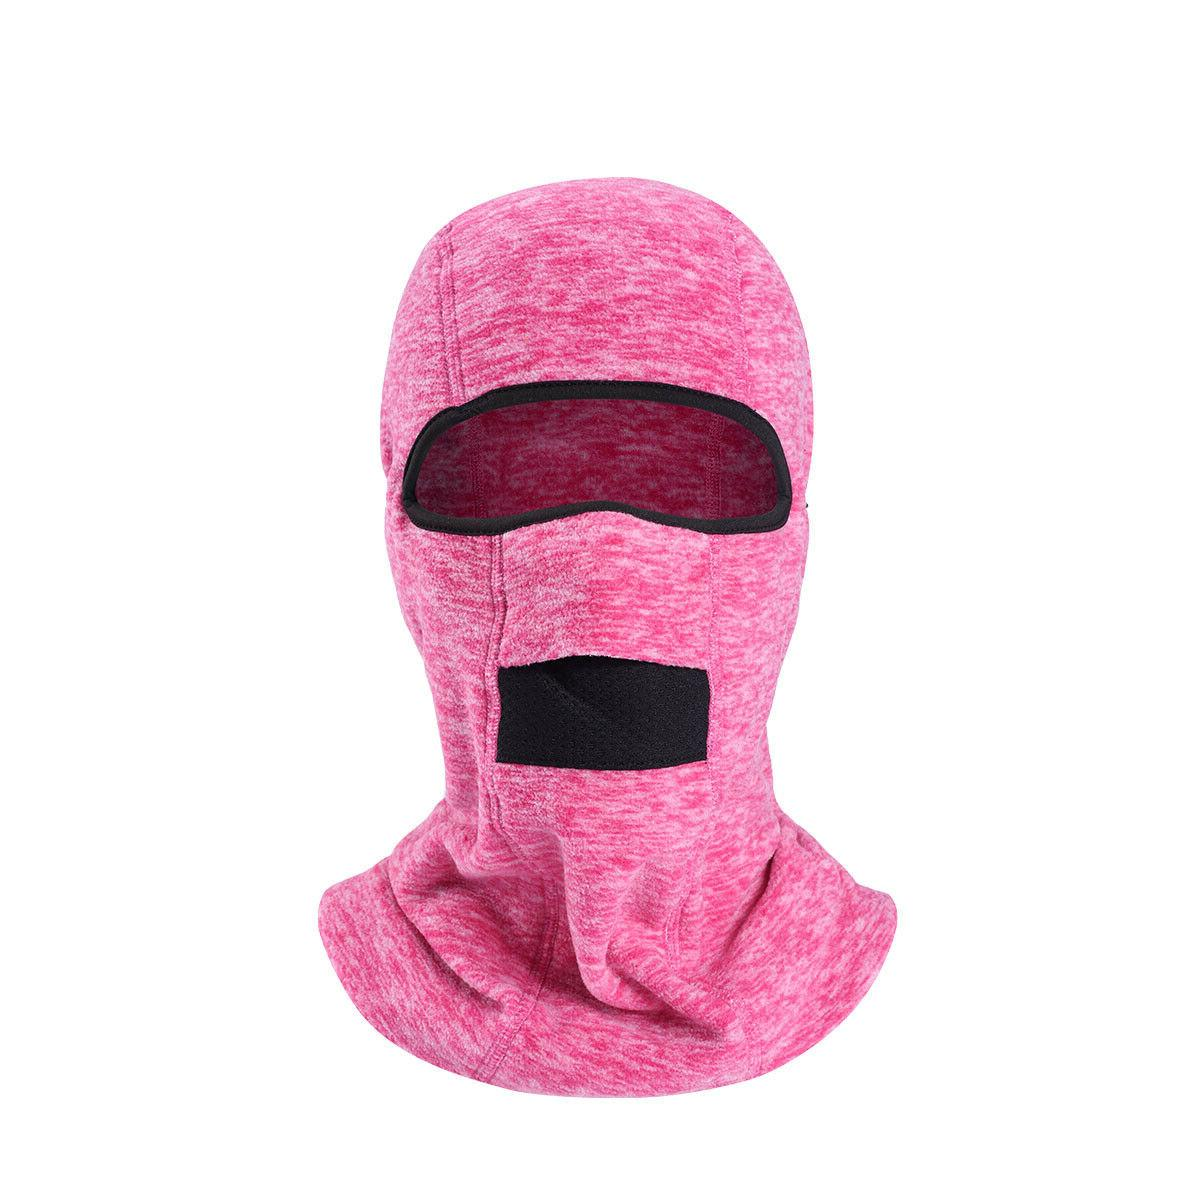 Balaclava Mask Windproof Outdoor Sports Winter